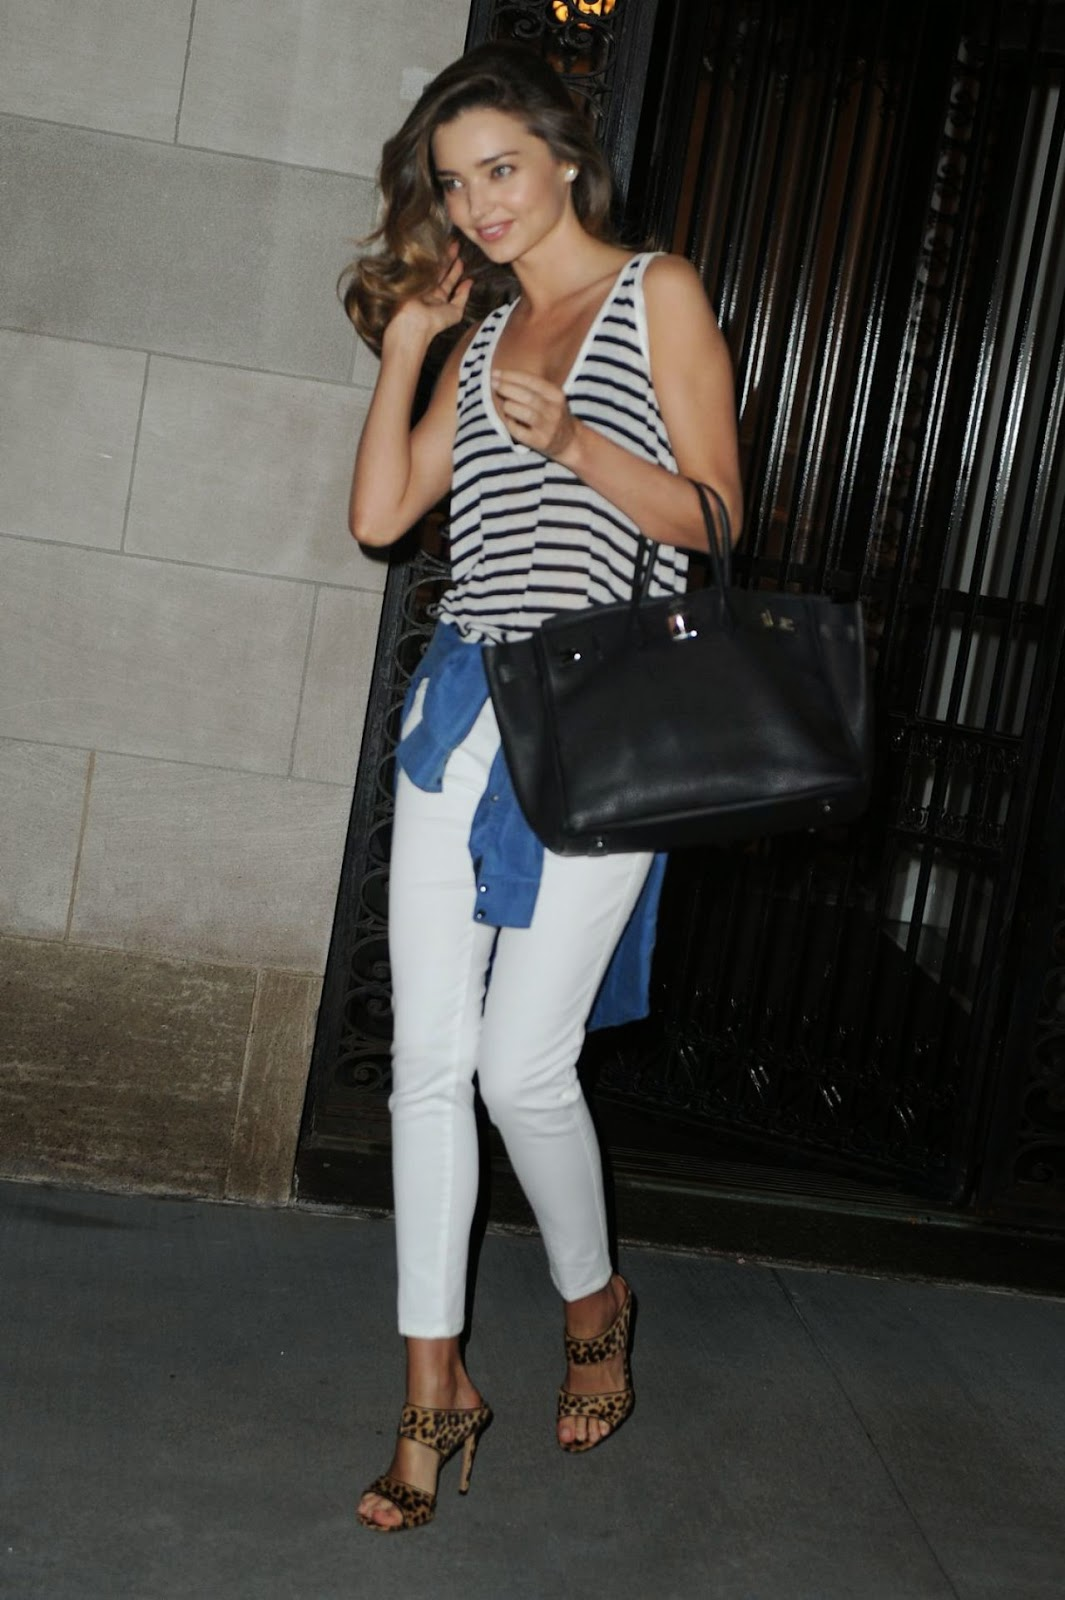 Miranda Kerr in leopard print heels at the Mandarin Oriental Hotel in NYC